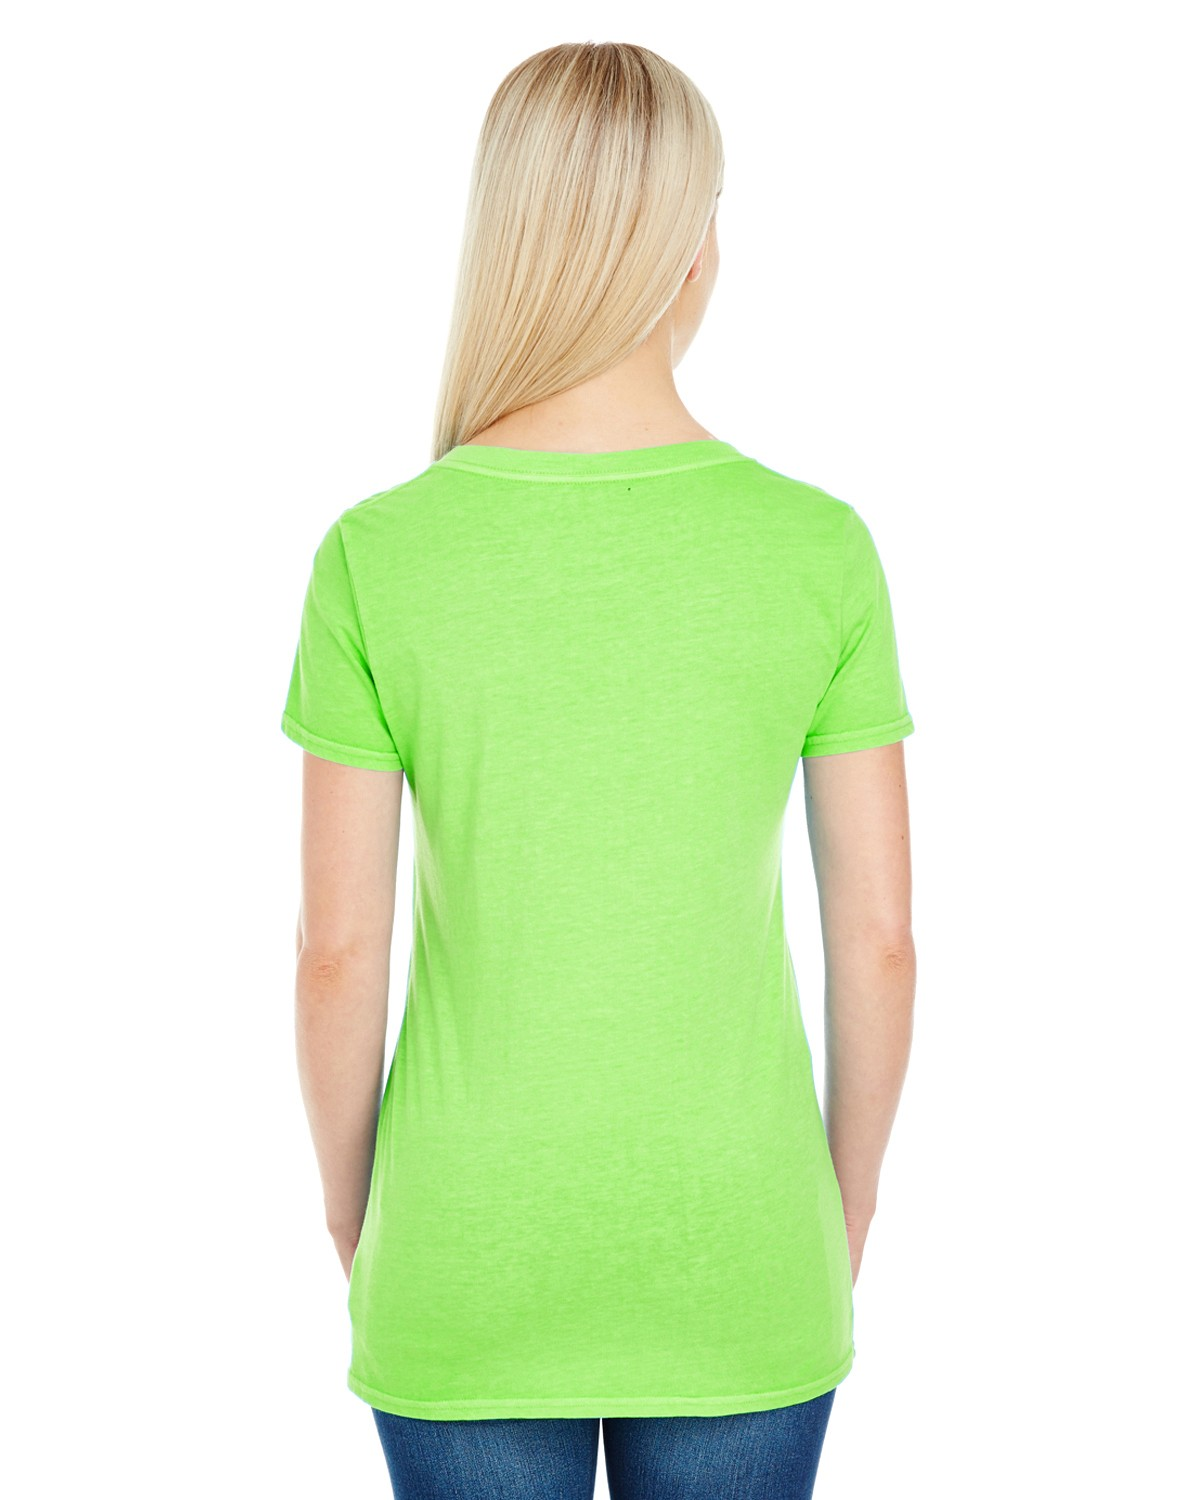 230B Threadfast Apparel LIME